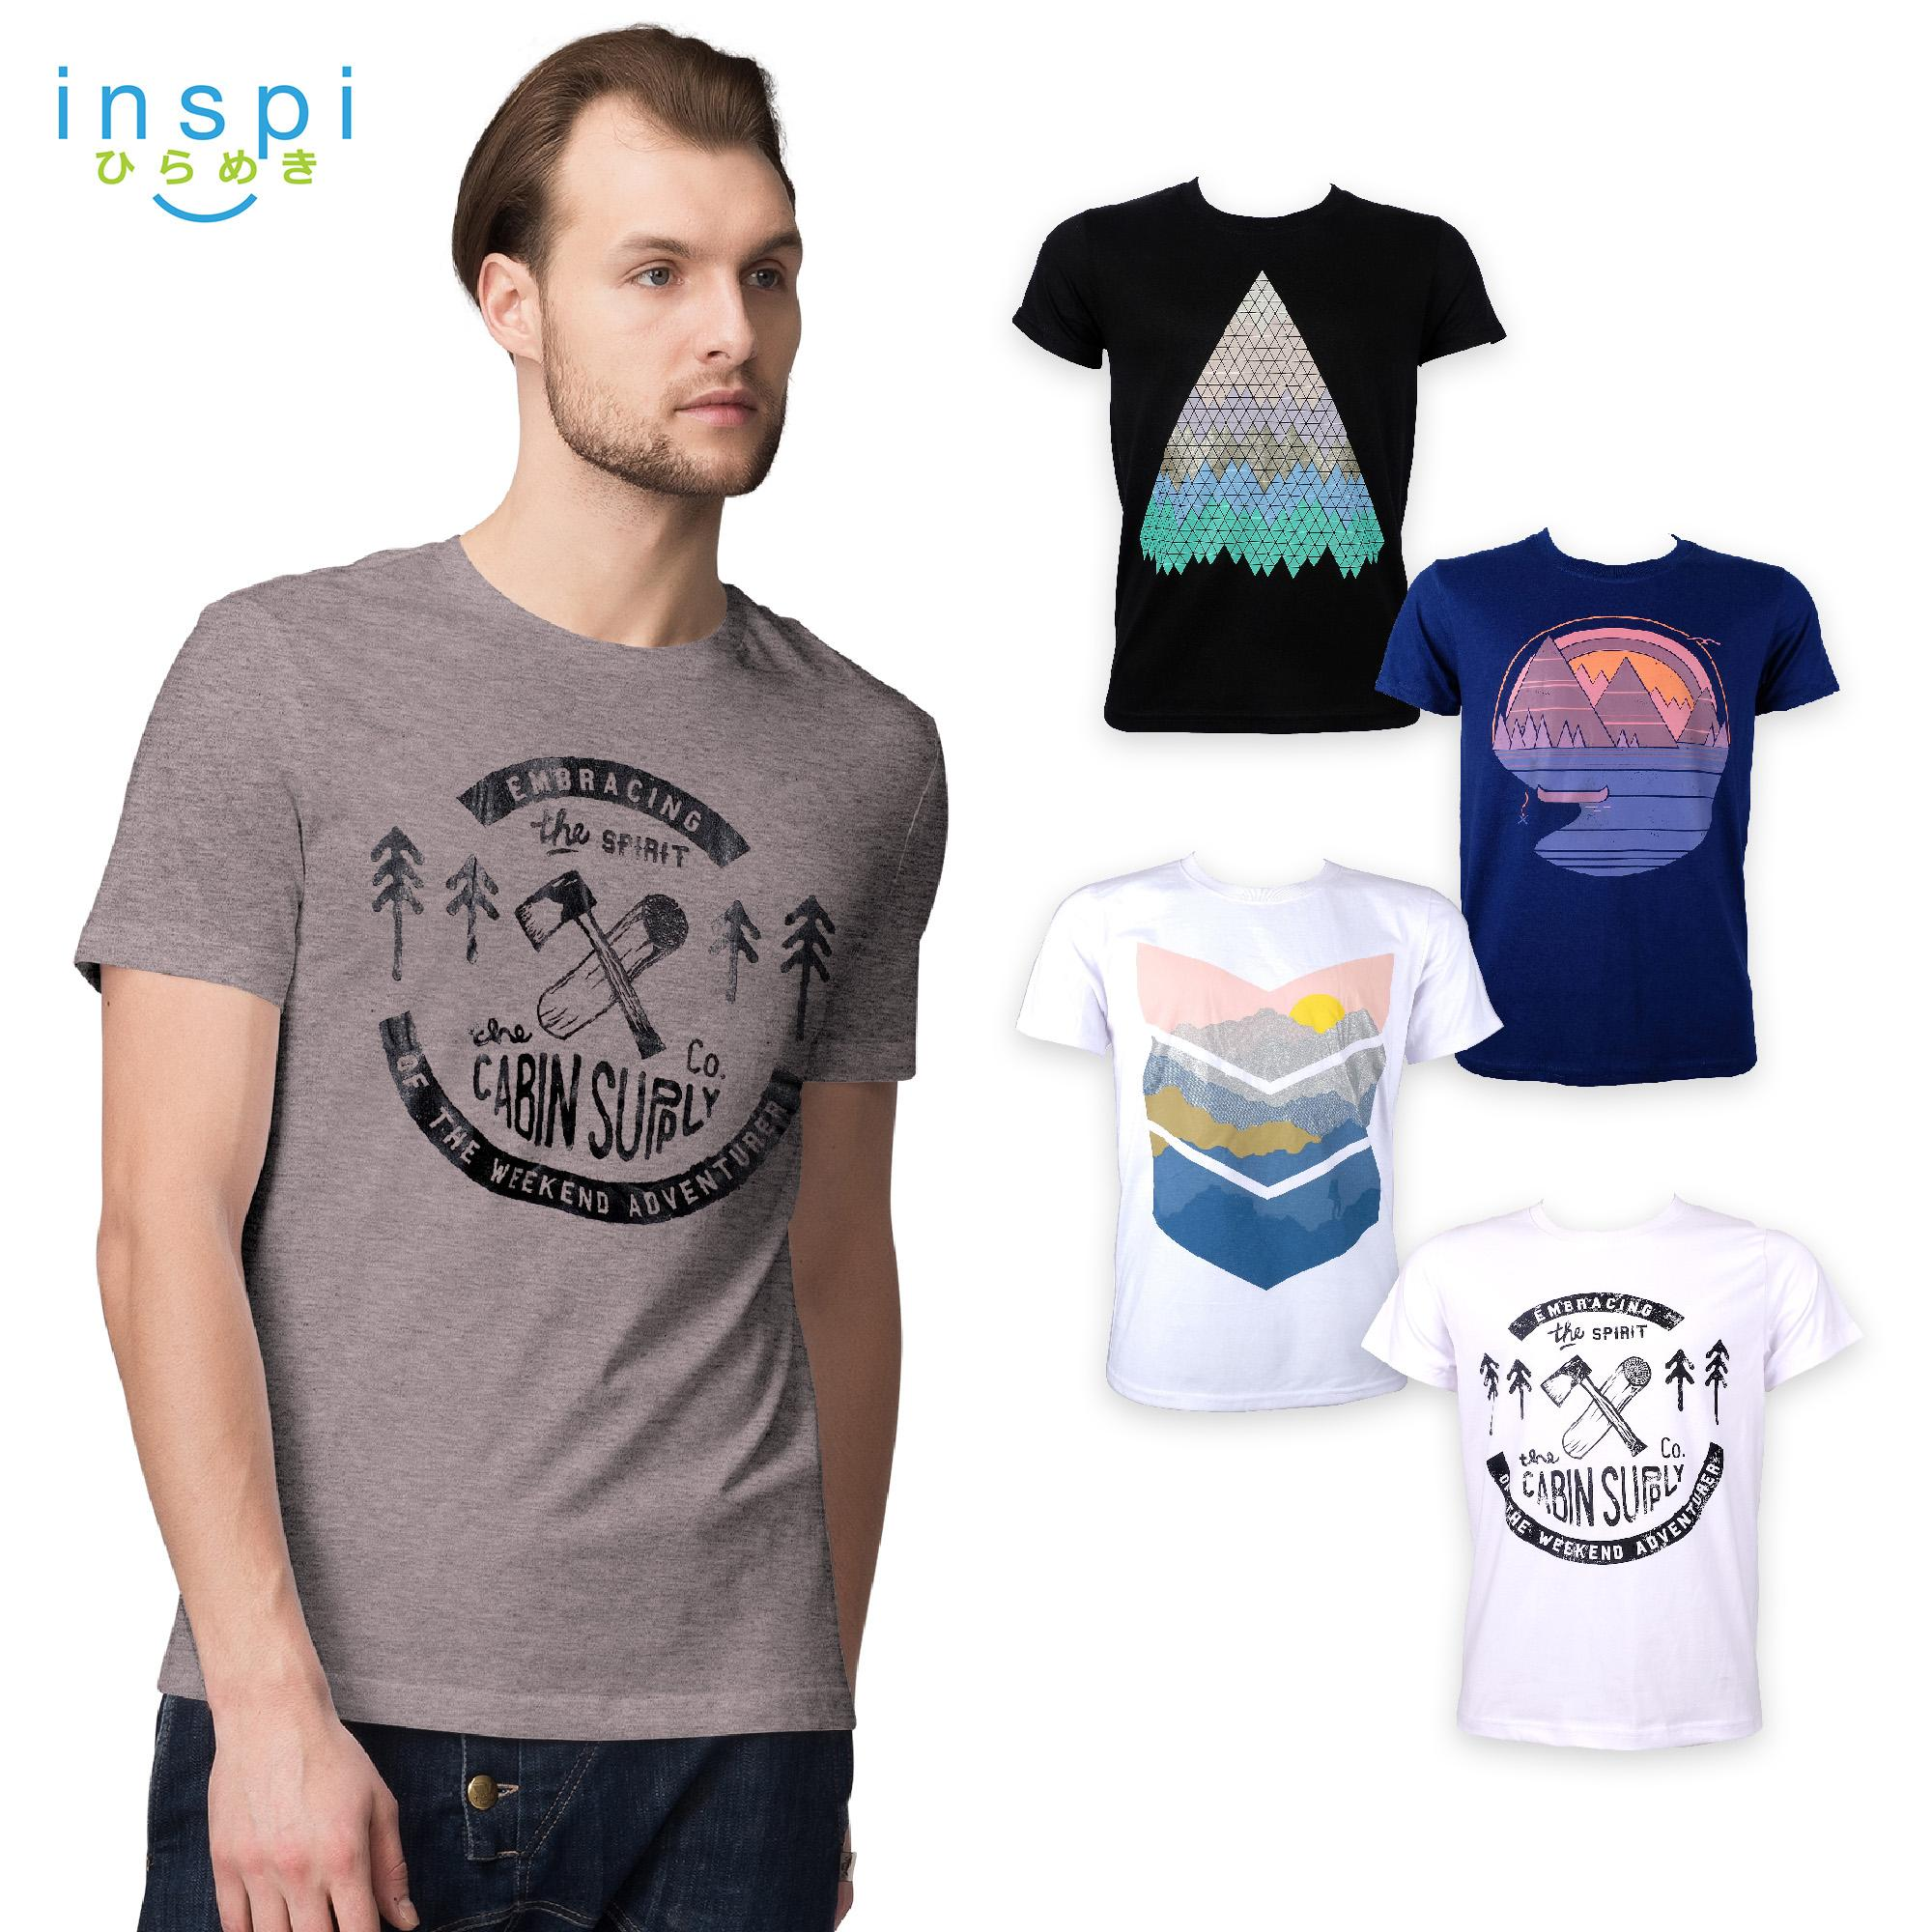 c70dfe251949 INSPI Tees Outdoors Collection tshirt printed graphic tee Mens t shirt  shirts for men tshirts sale